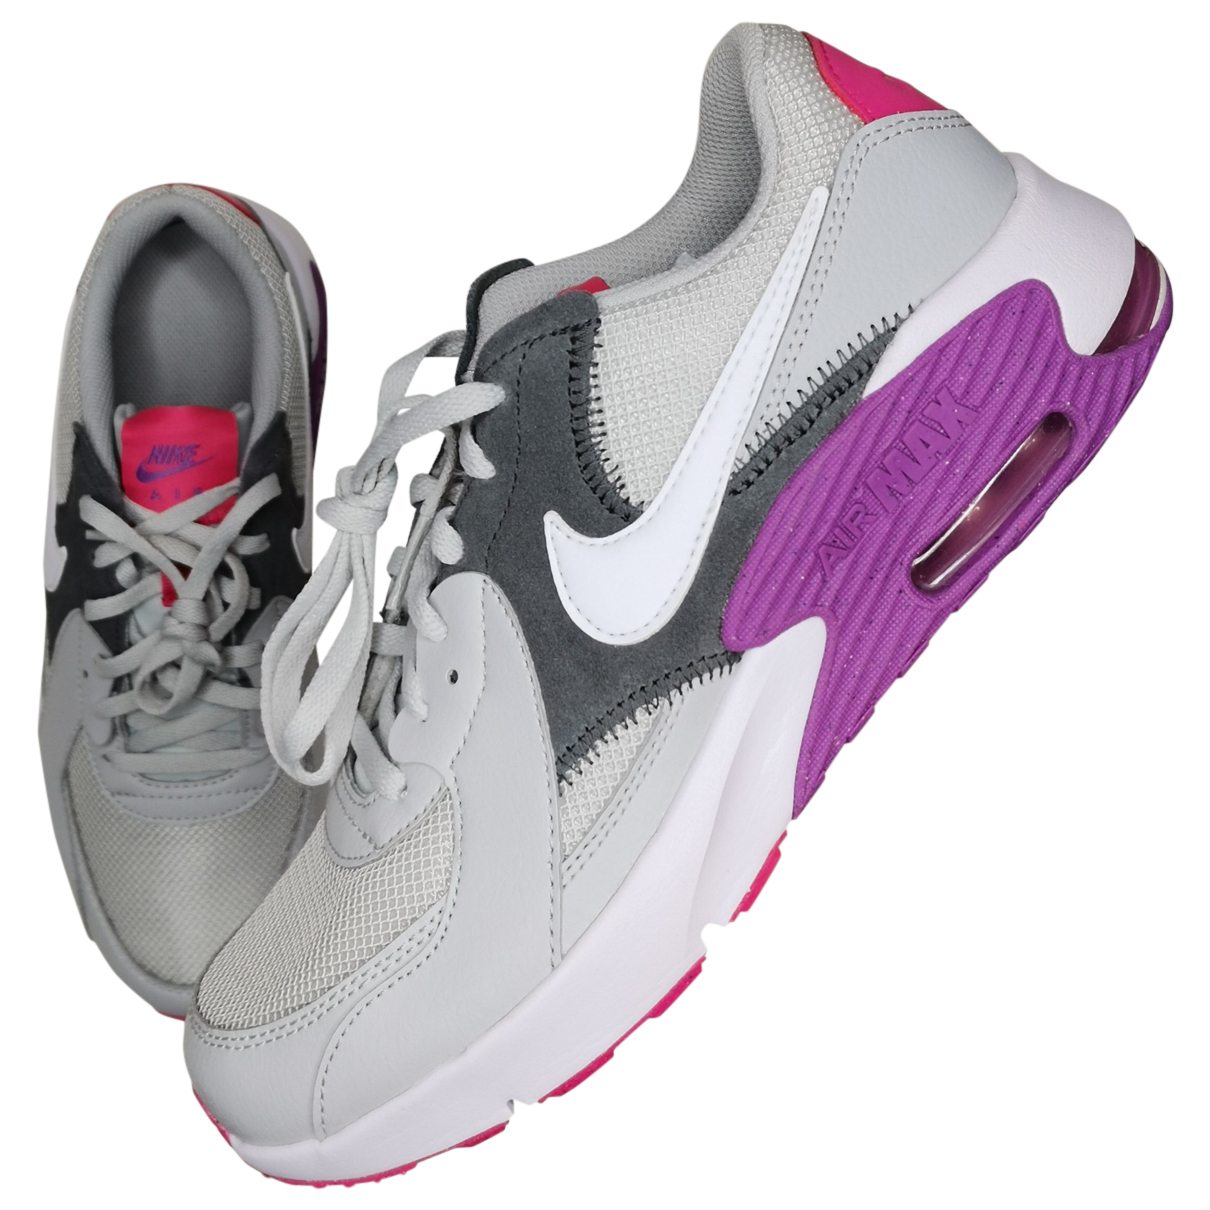 Nike Air Max  Grey Leather Trainers for Women 38.5 EU